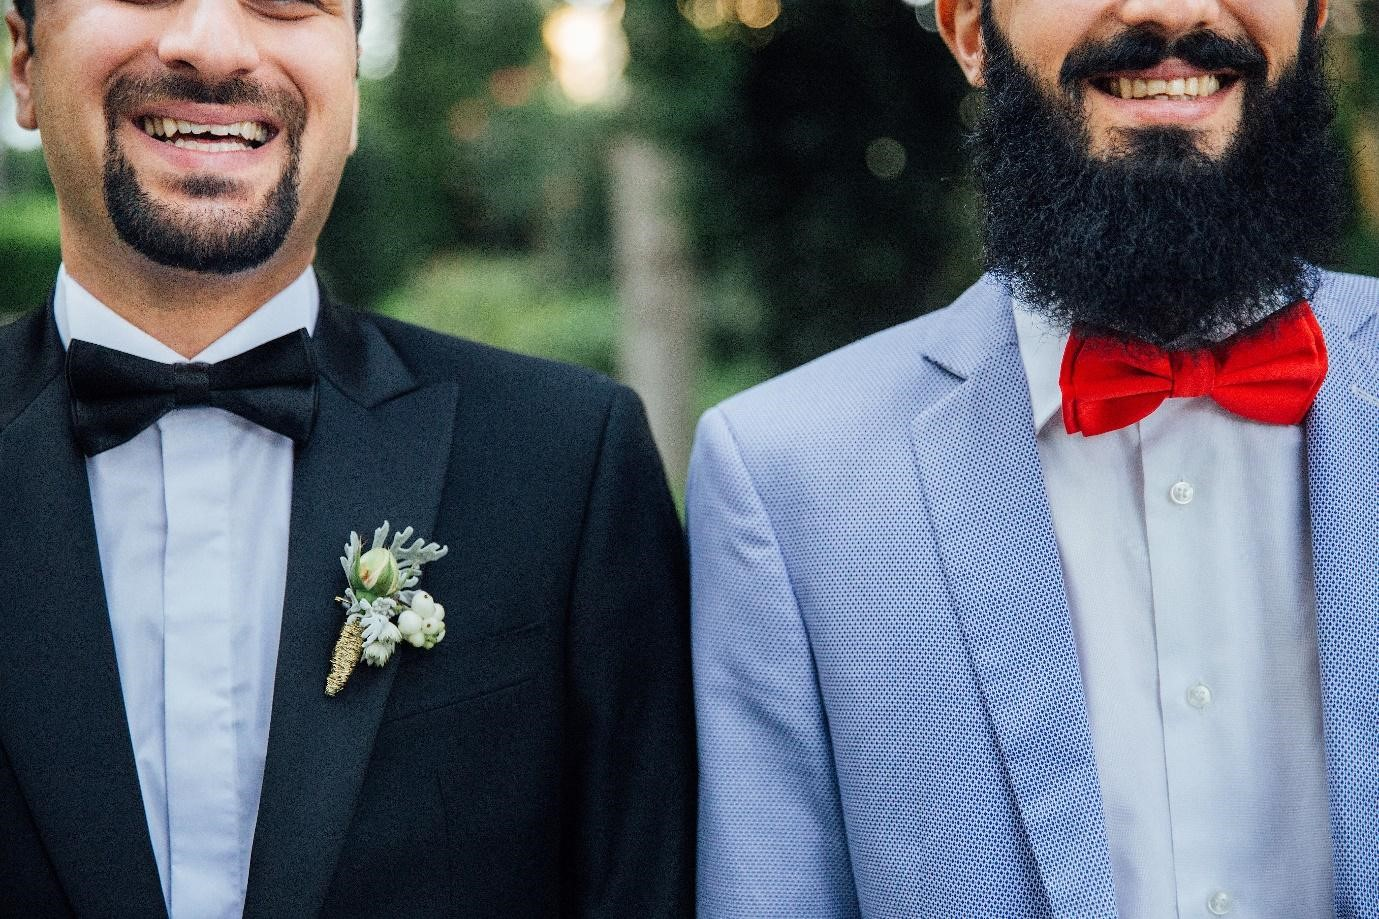 Saying yes to same sex marriage and no to exclusion: Meet